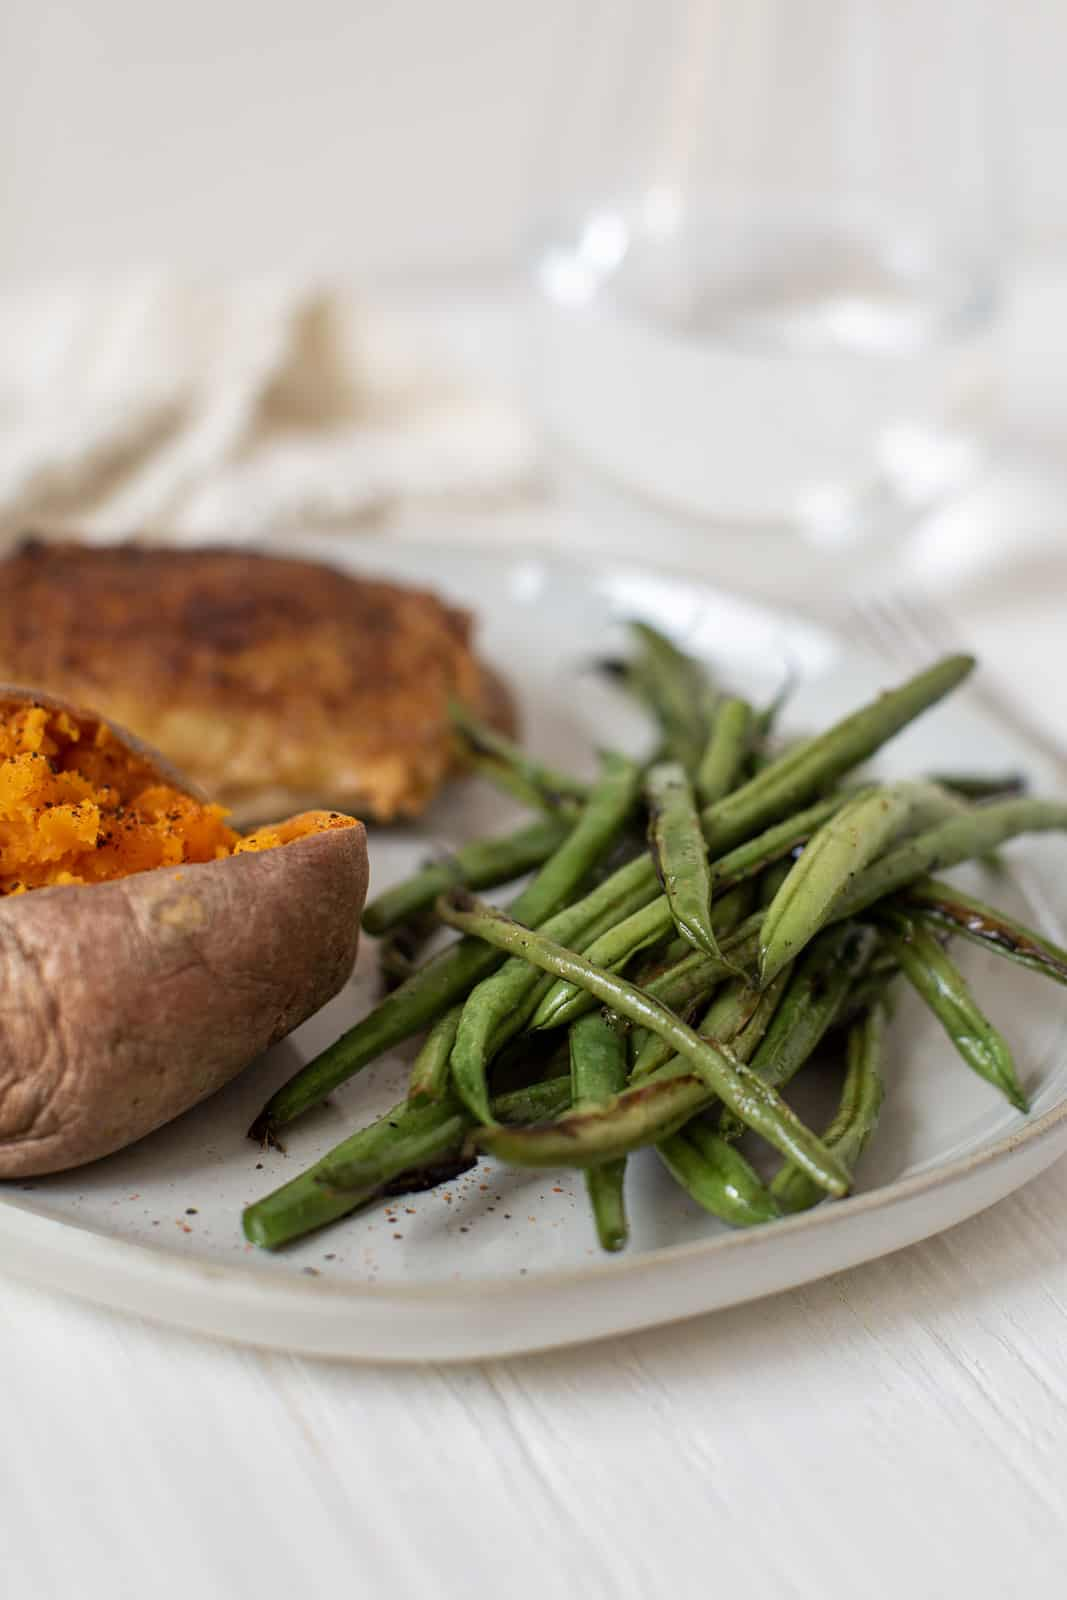 white plate with green beans, sweet potatoes, and roasted chicken.